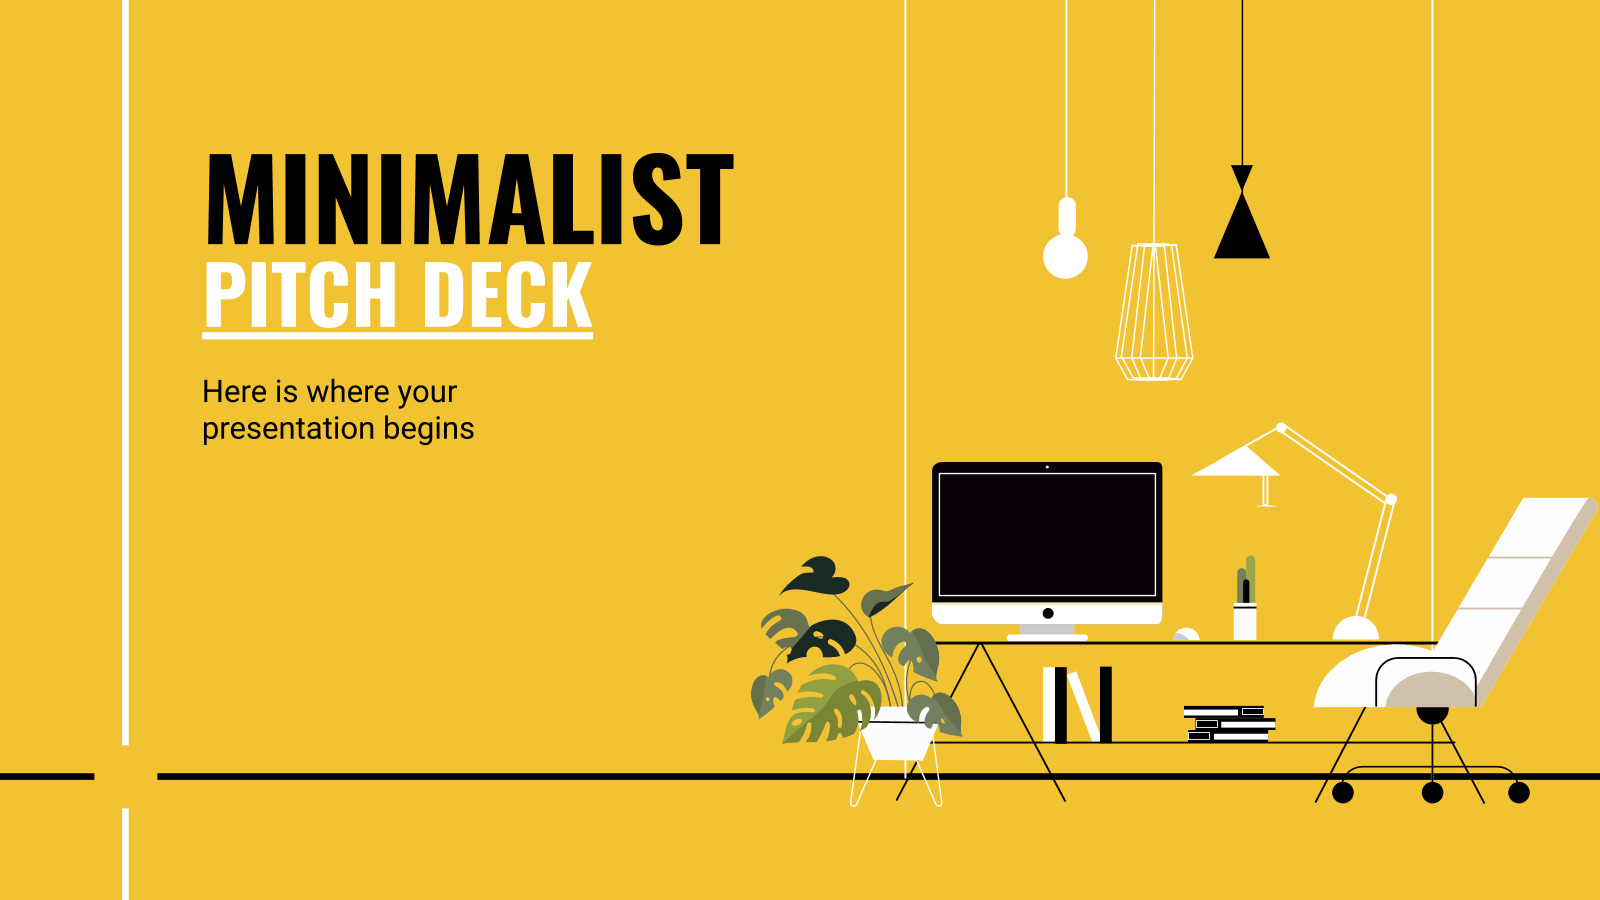 Minimalist Pitch Deck presentation template